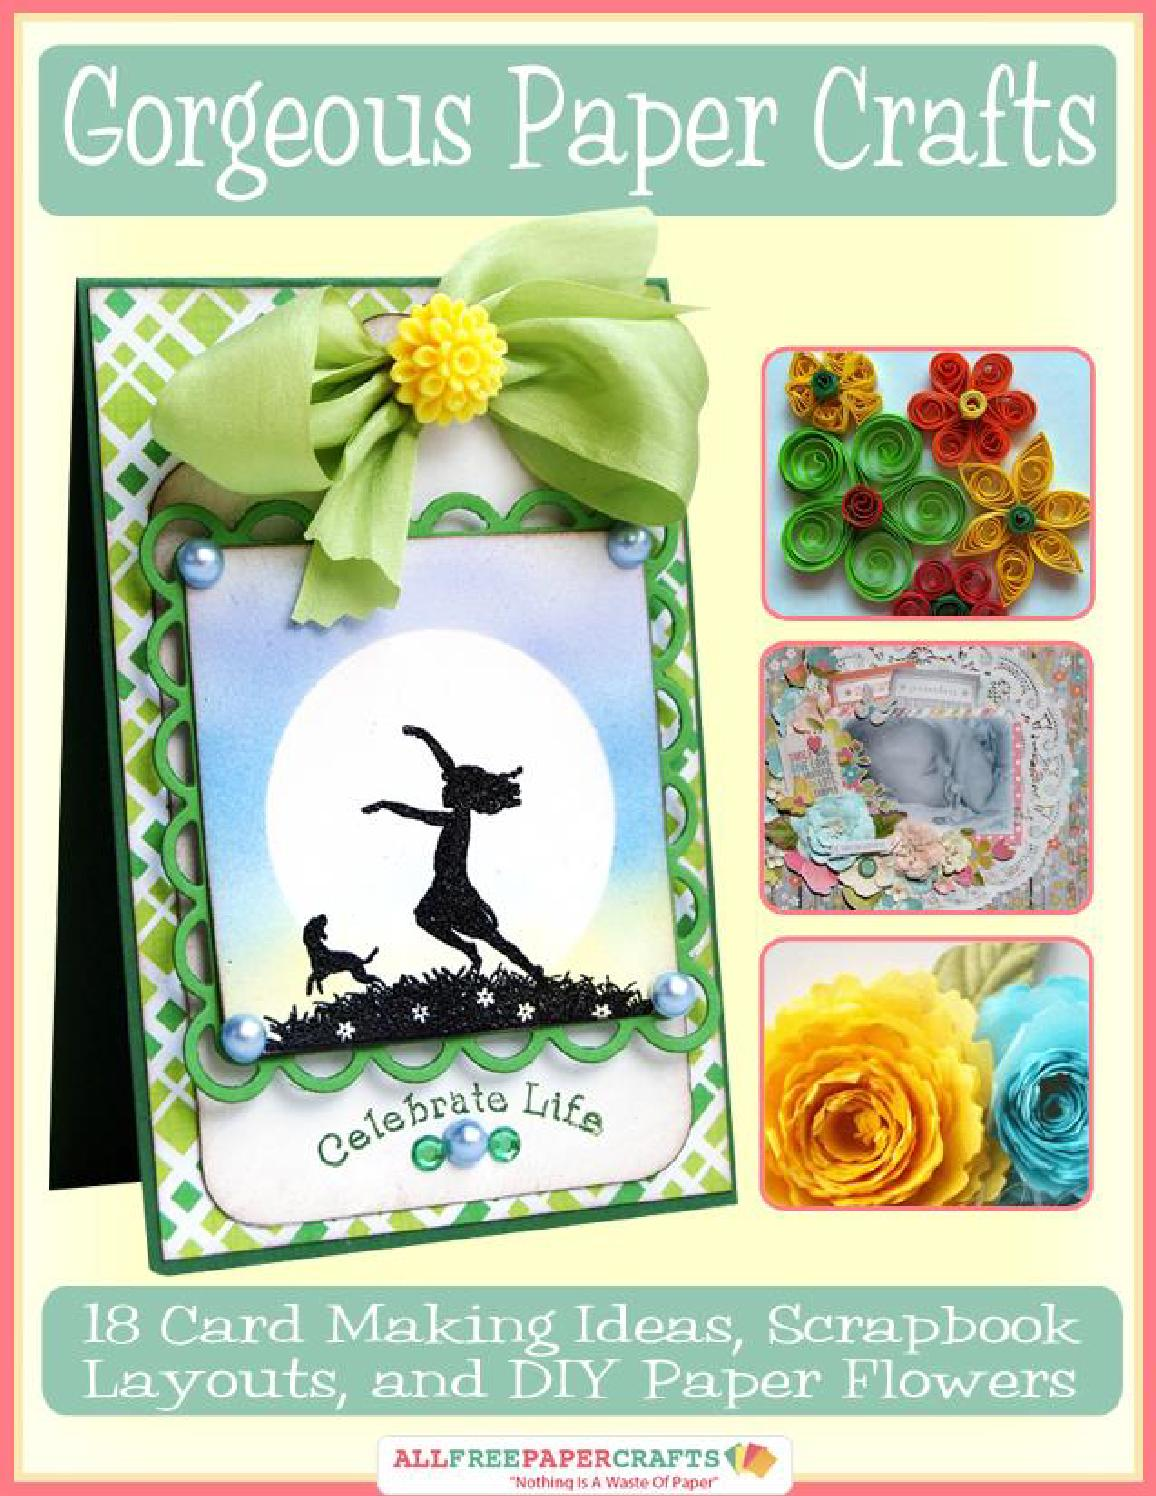 Gorgeous Paper Crafts 18 Card Making Ideas Scrapbook Layouts And Diy